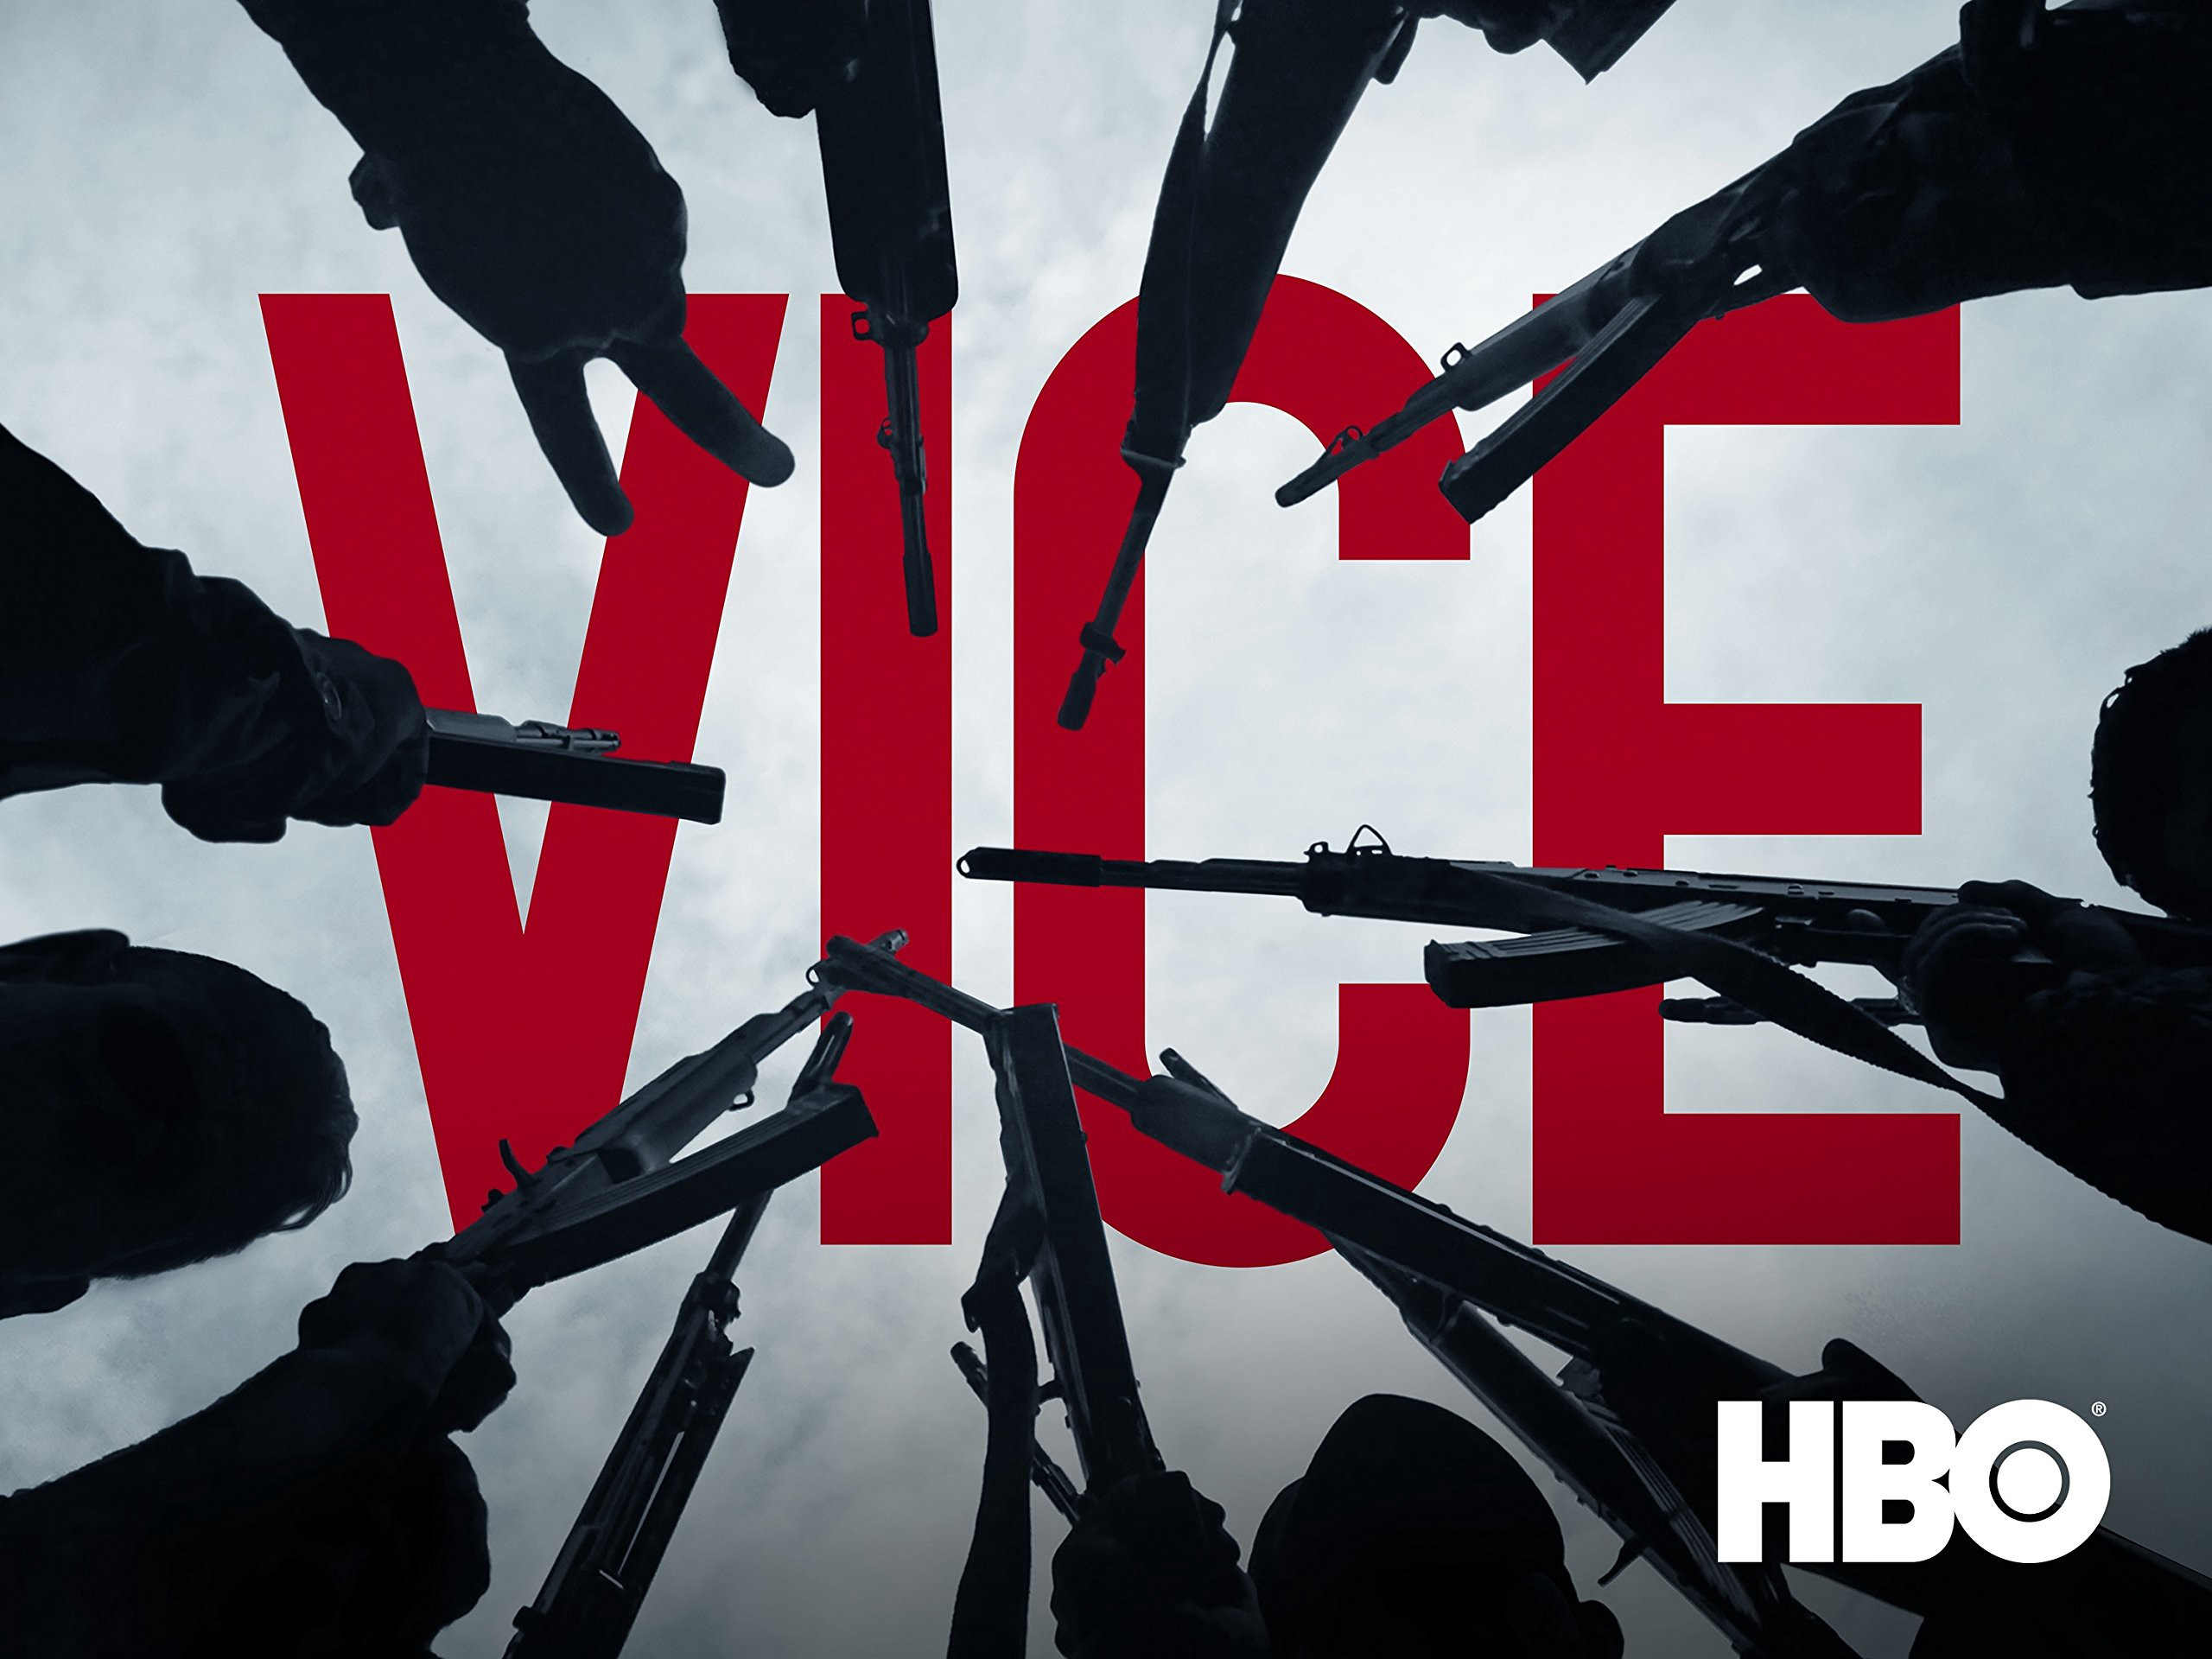 Hbo vice episodes